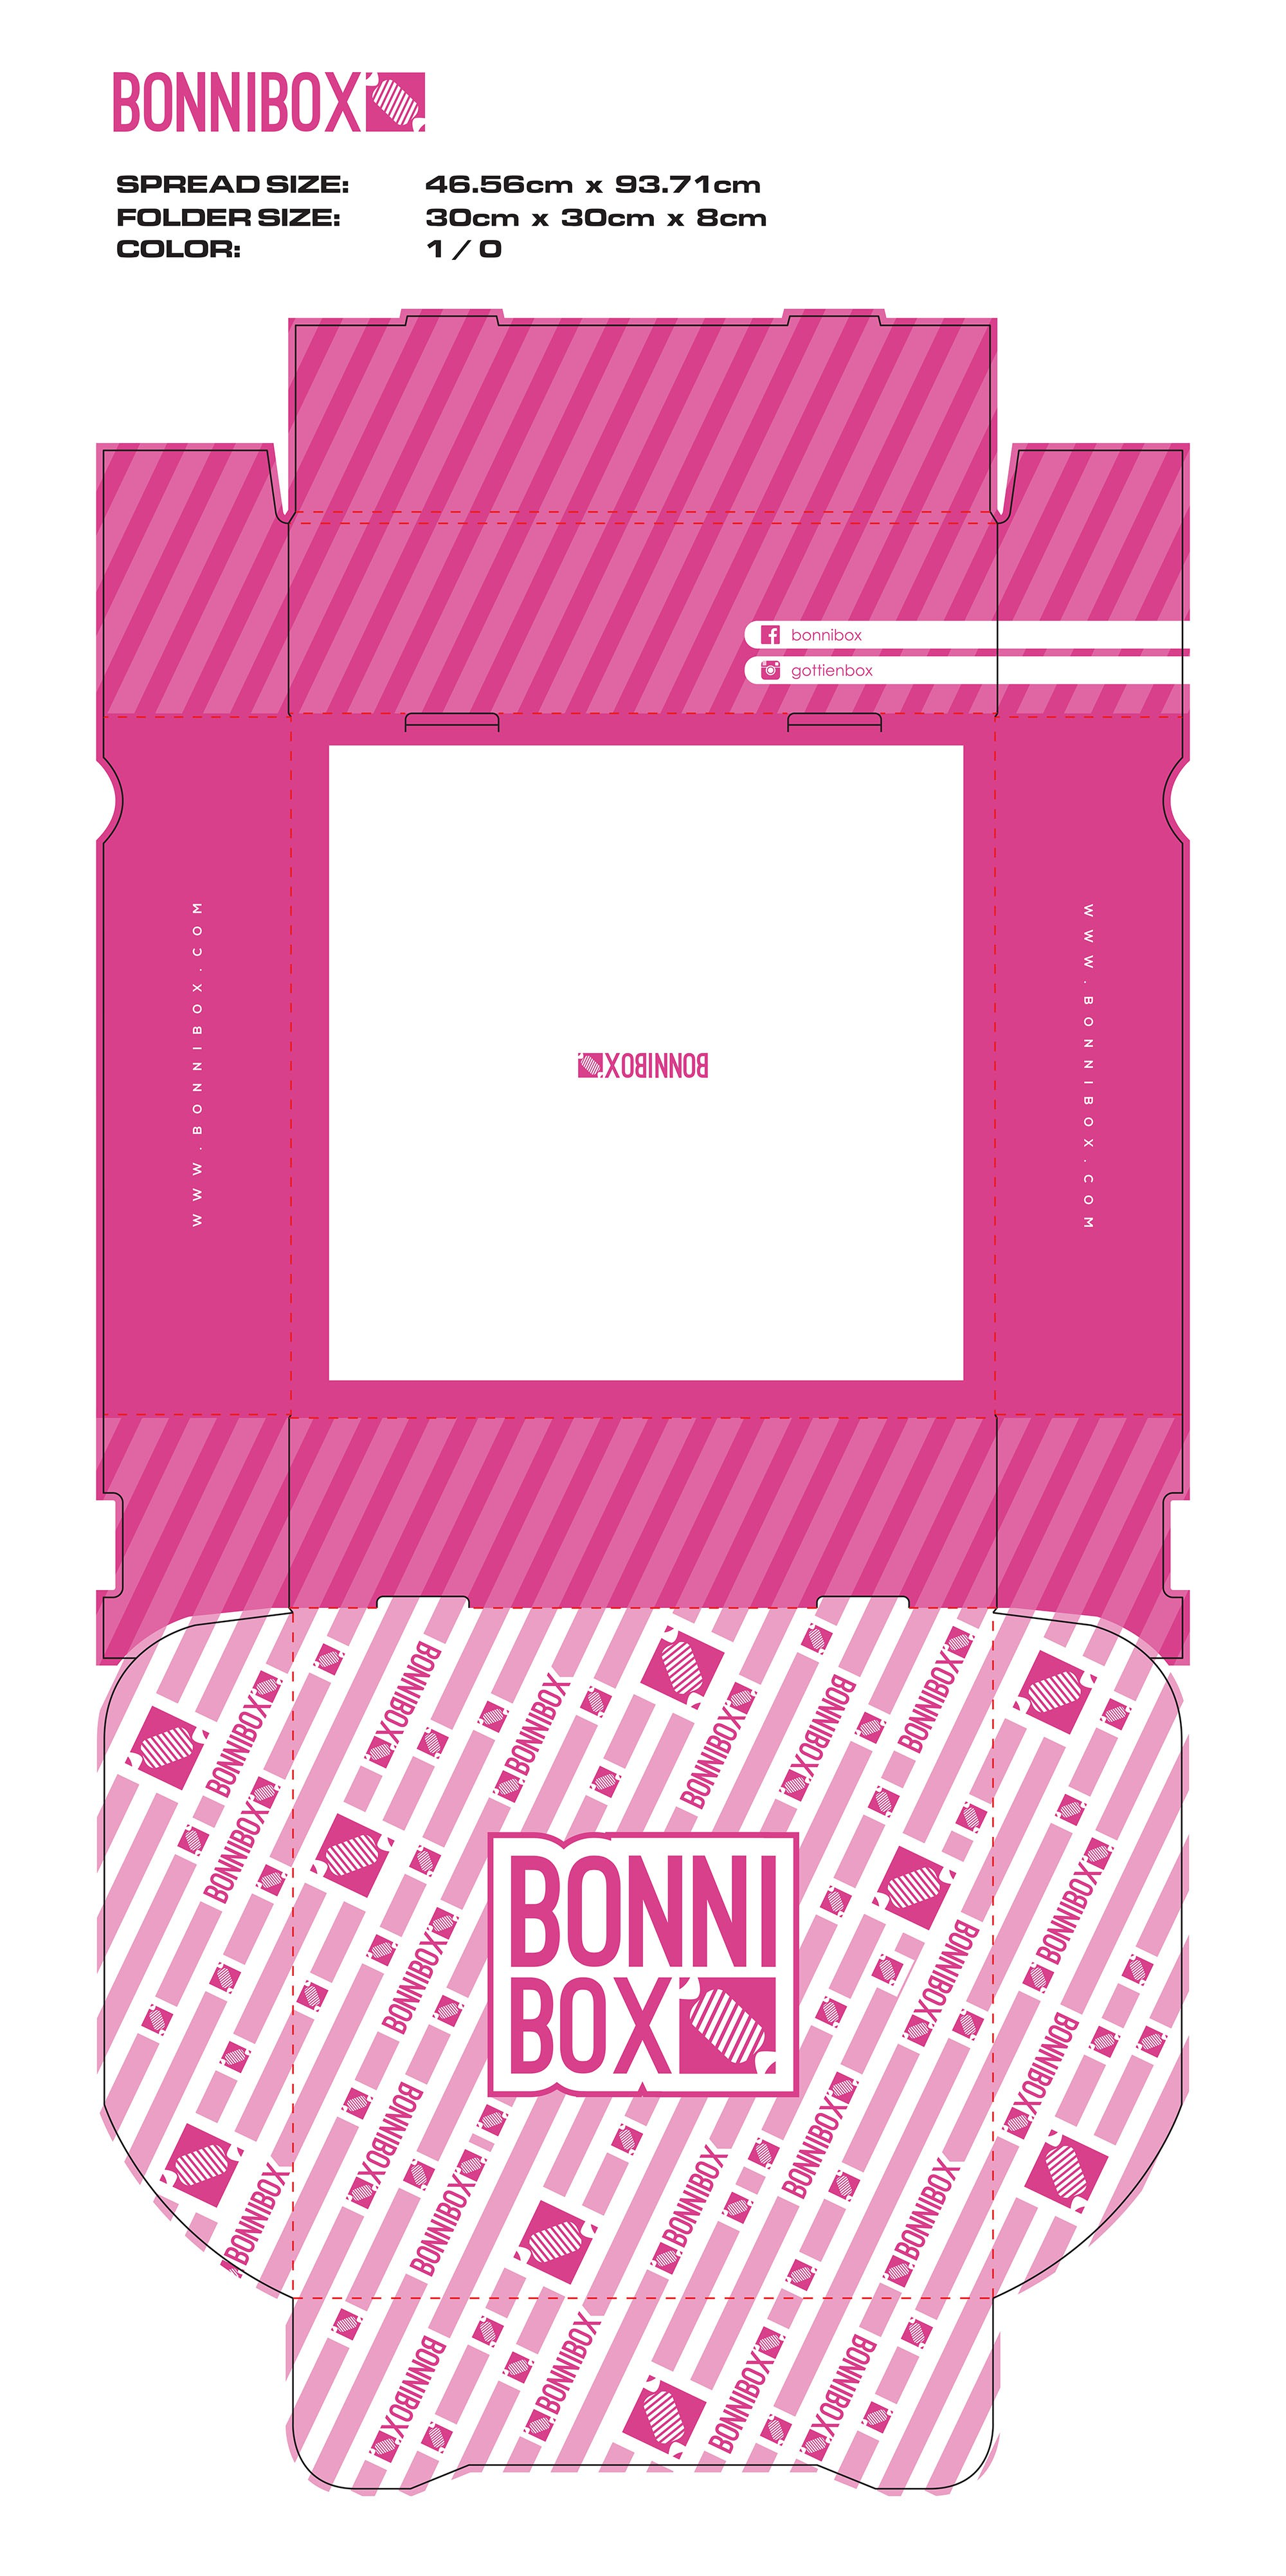 Bonnibox - clean candy box